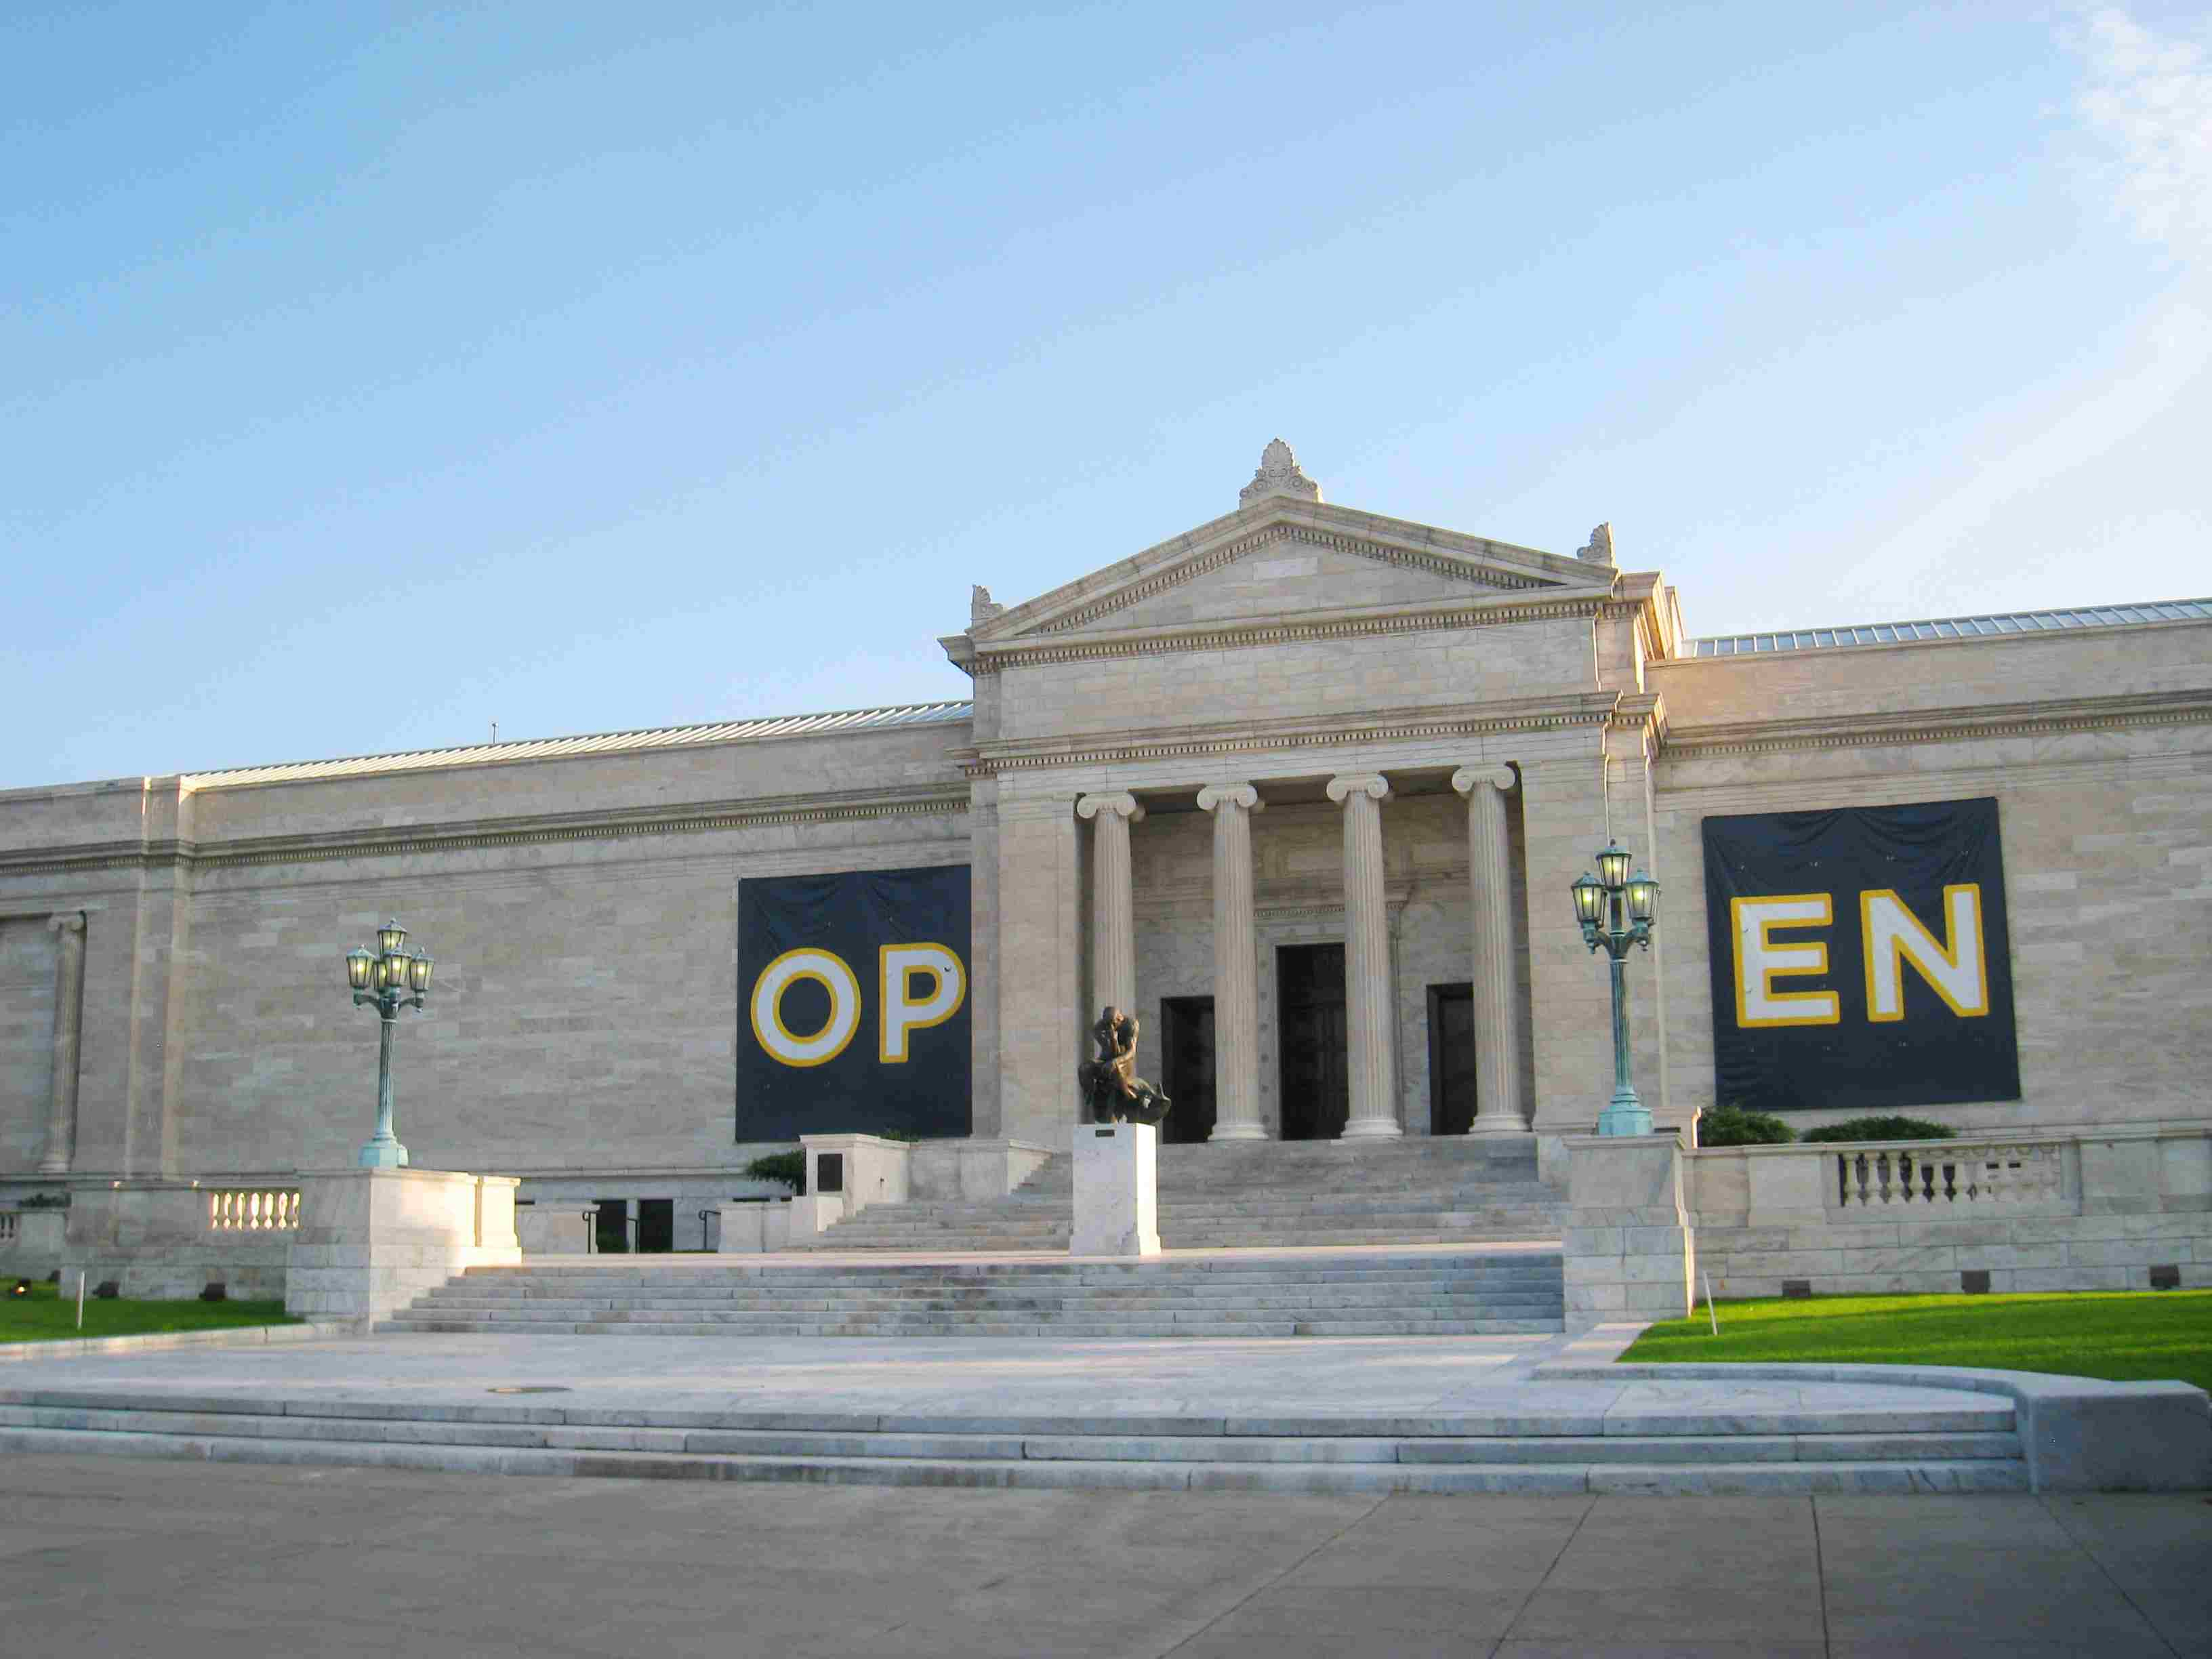 Best Free Things to Do With Kids in Cleveland, Ohio